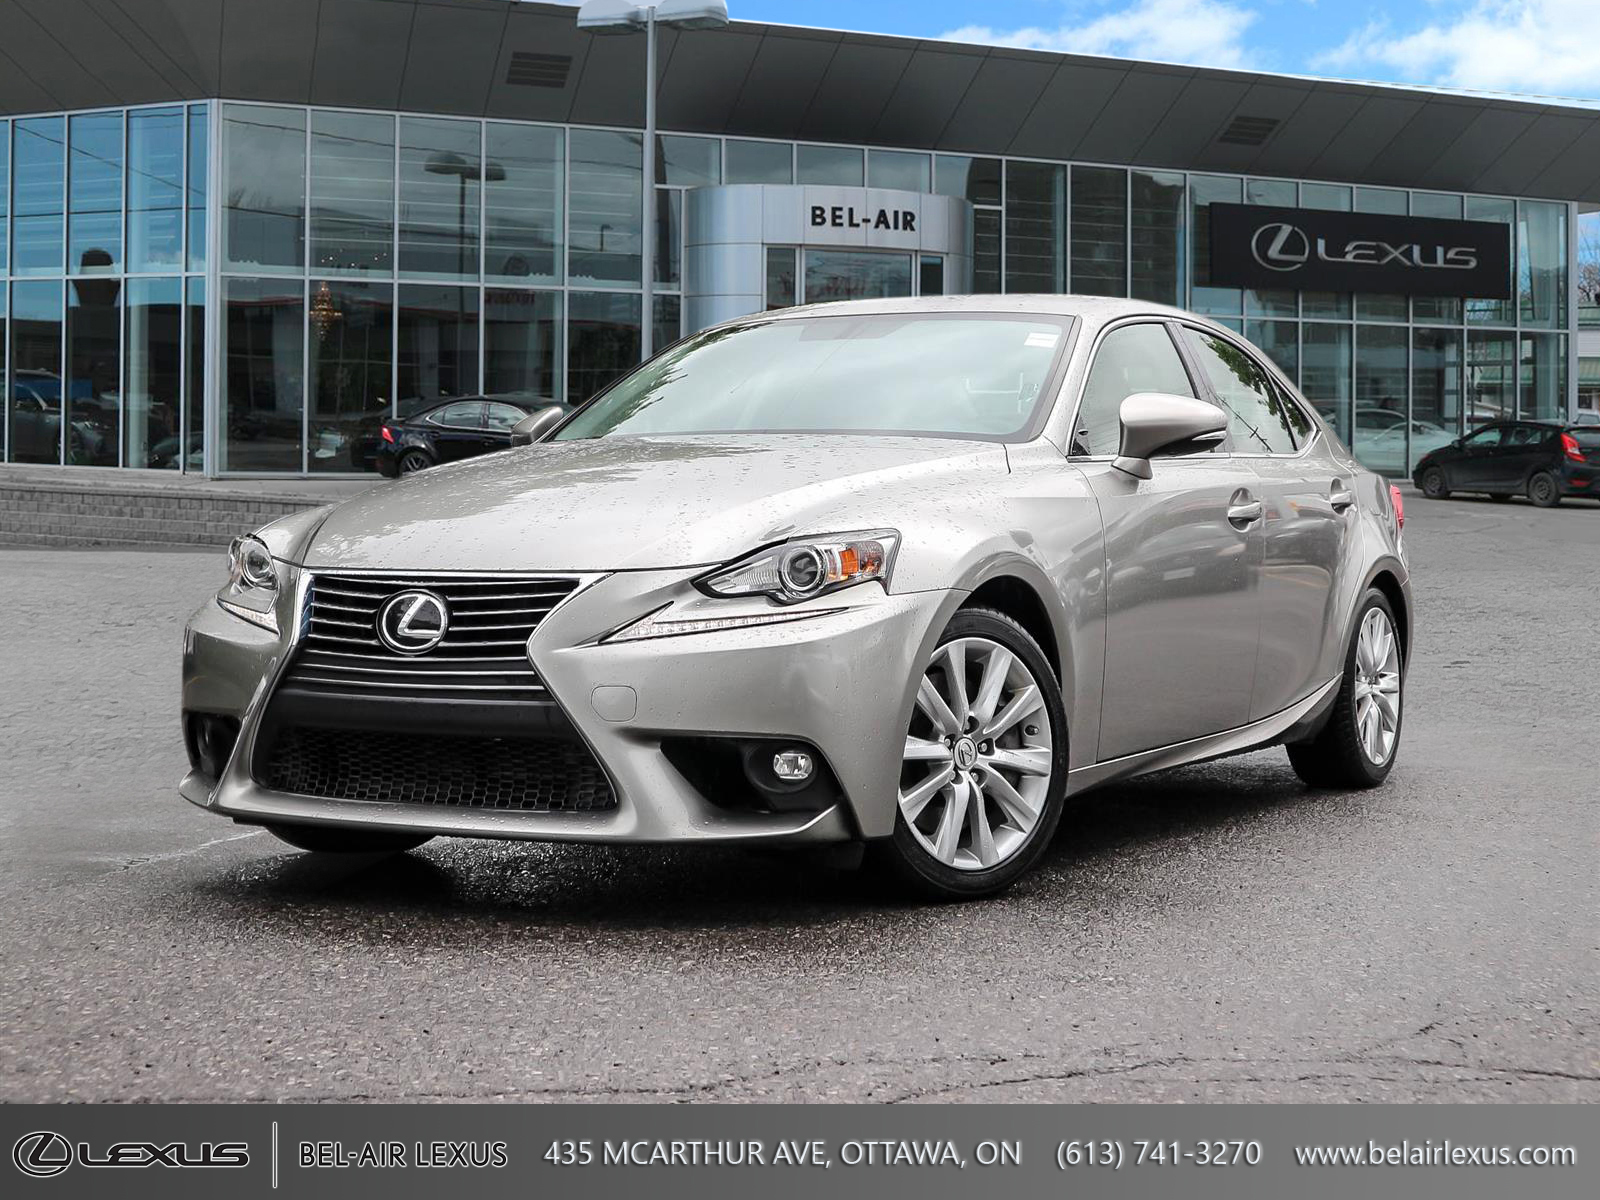 2016 Lexus IS at Bel-Air Lexus